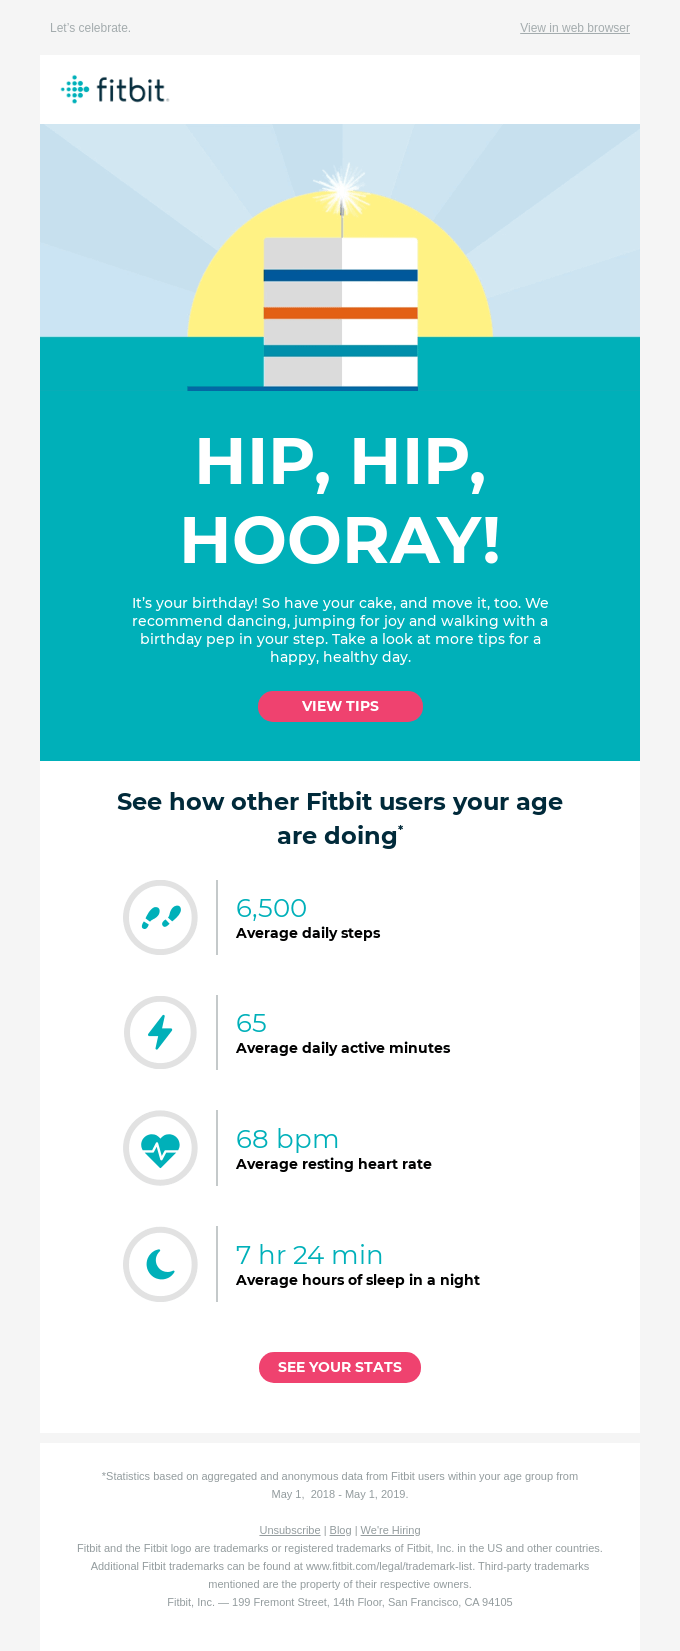 Personalized email for special occasion